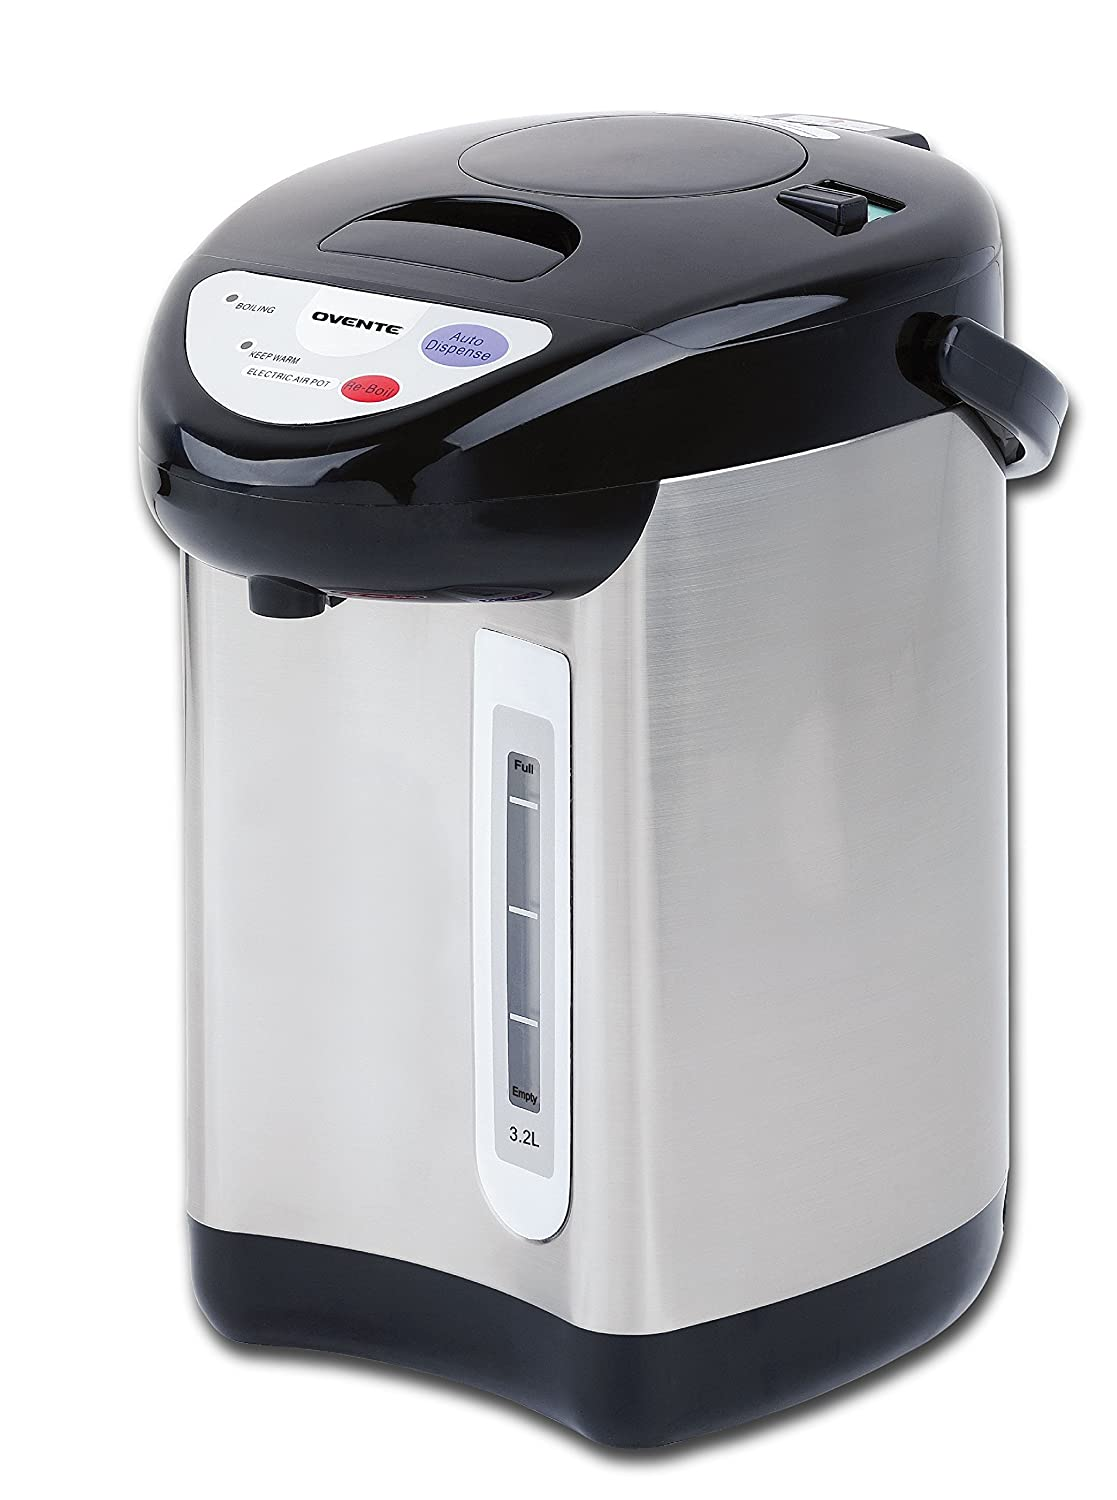 Ovente WA32S 3.2 Liter Insulated Water Dispenser with Boiler and Keep Warm Function,Black Stainless Steel by Ovente   B01183YSVY